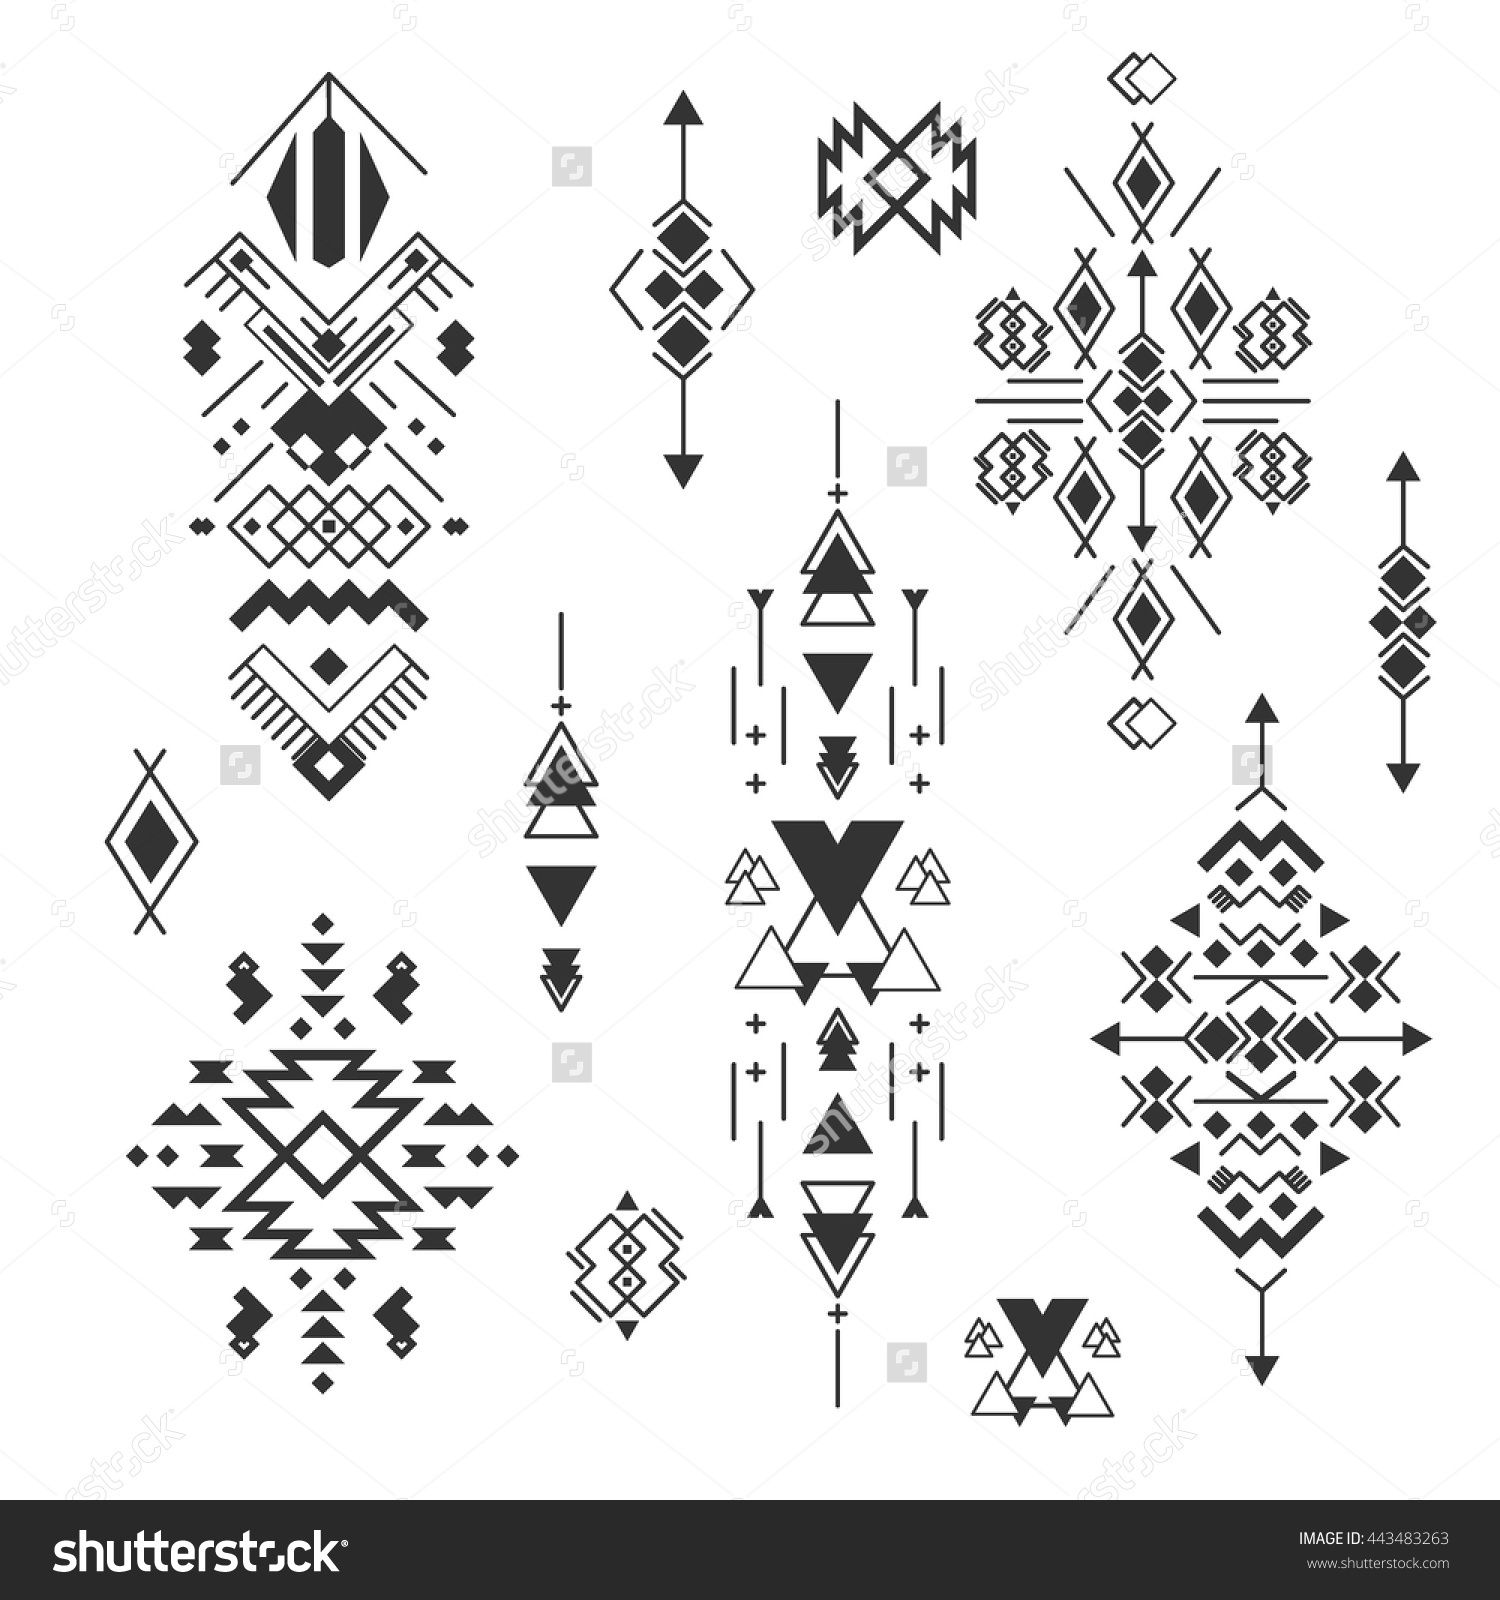 360836593ff44 Vector Tribal elements, ethnic collection, aztec stile, tribal design  isolated on white background. Abstract ornament geometric aztec native  pattern art.